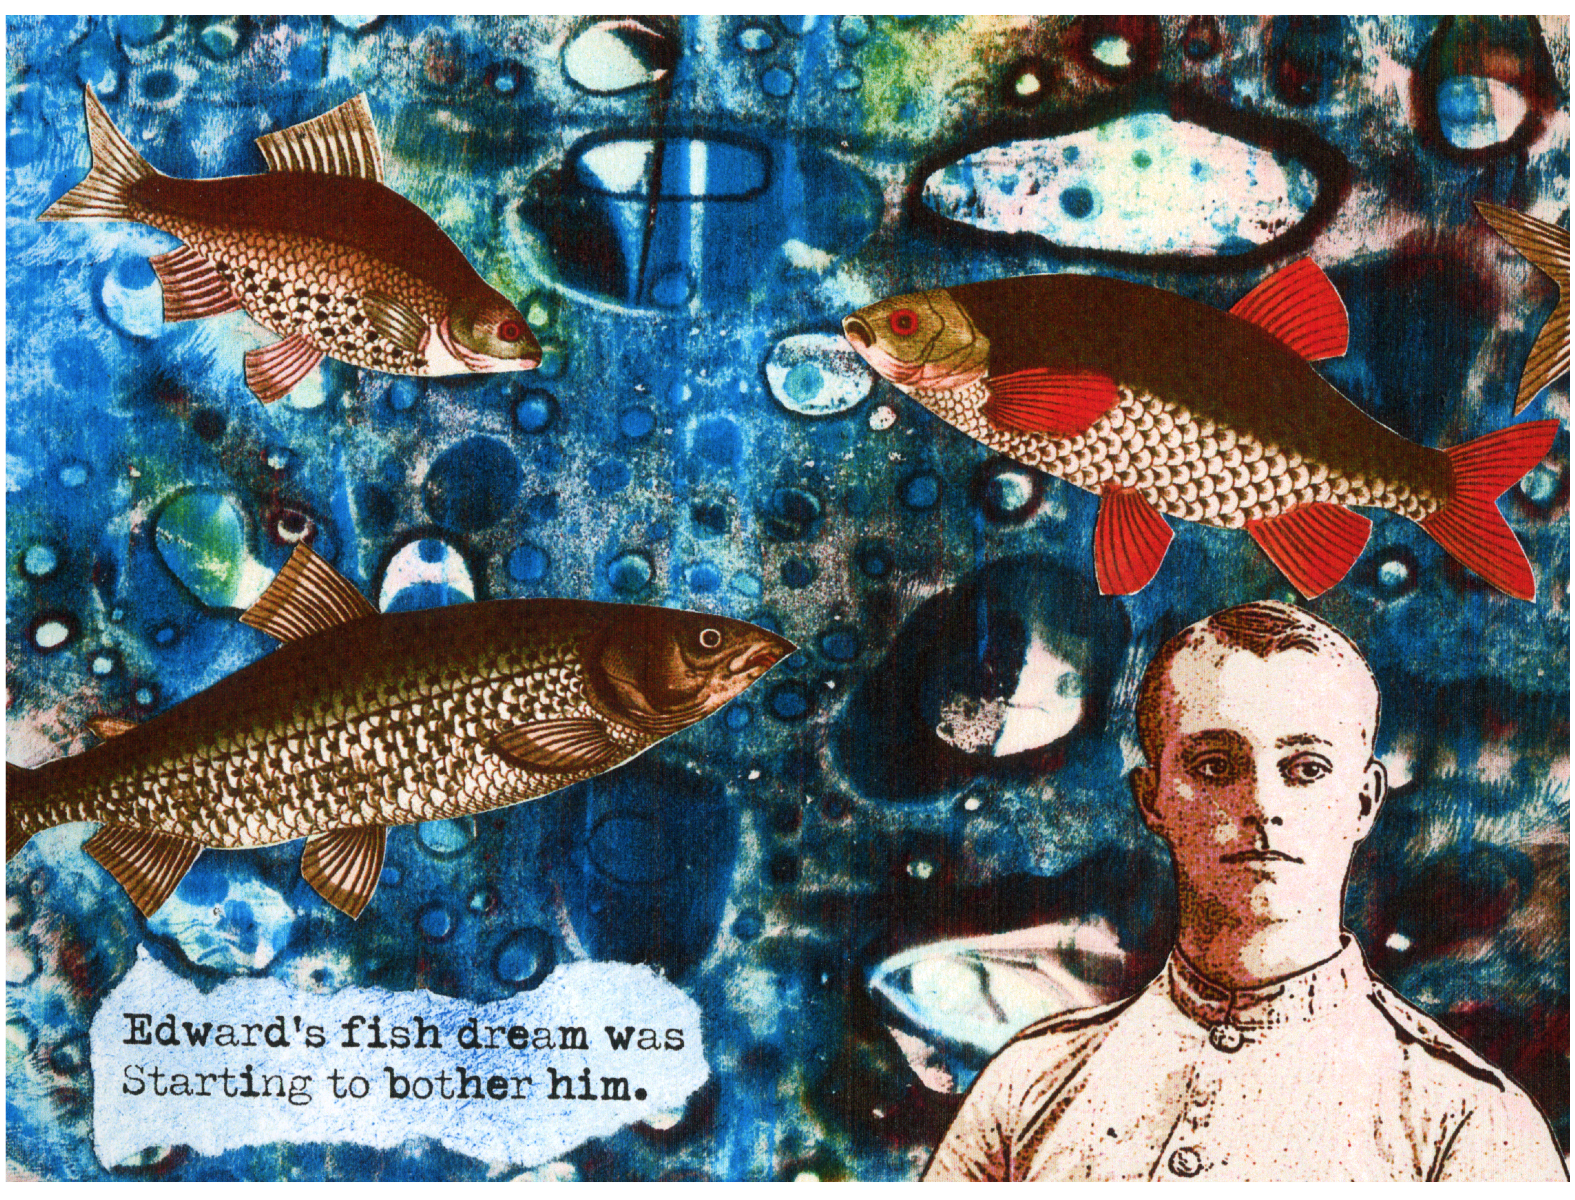 There is a fish in a dream - why? 89